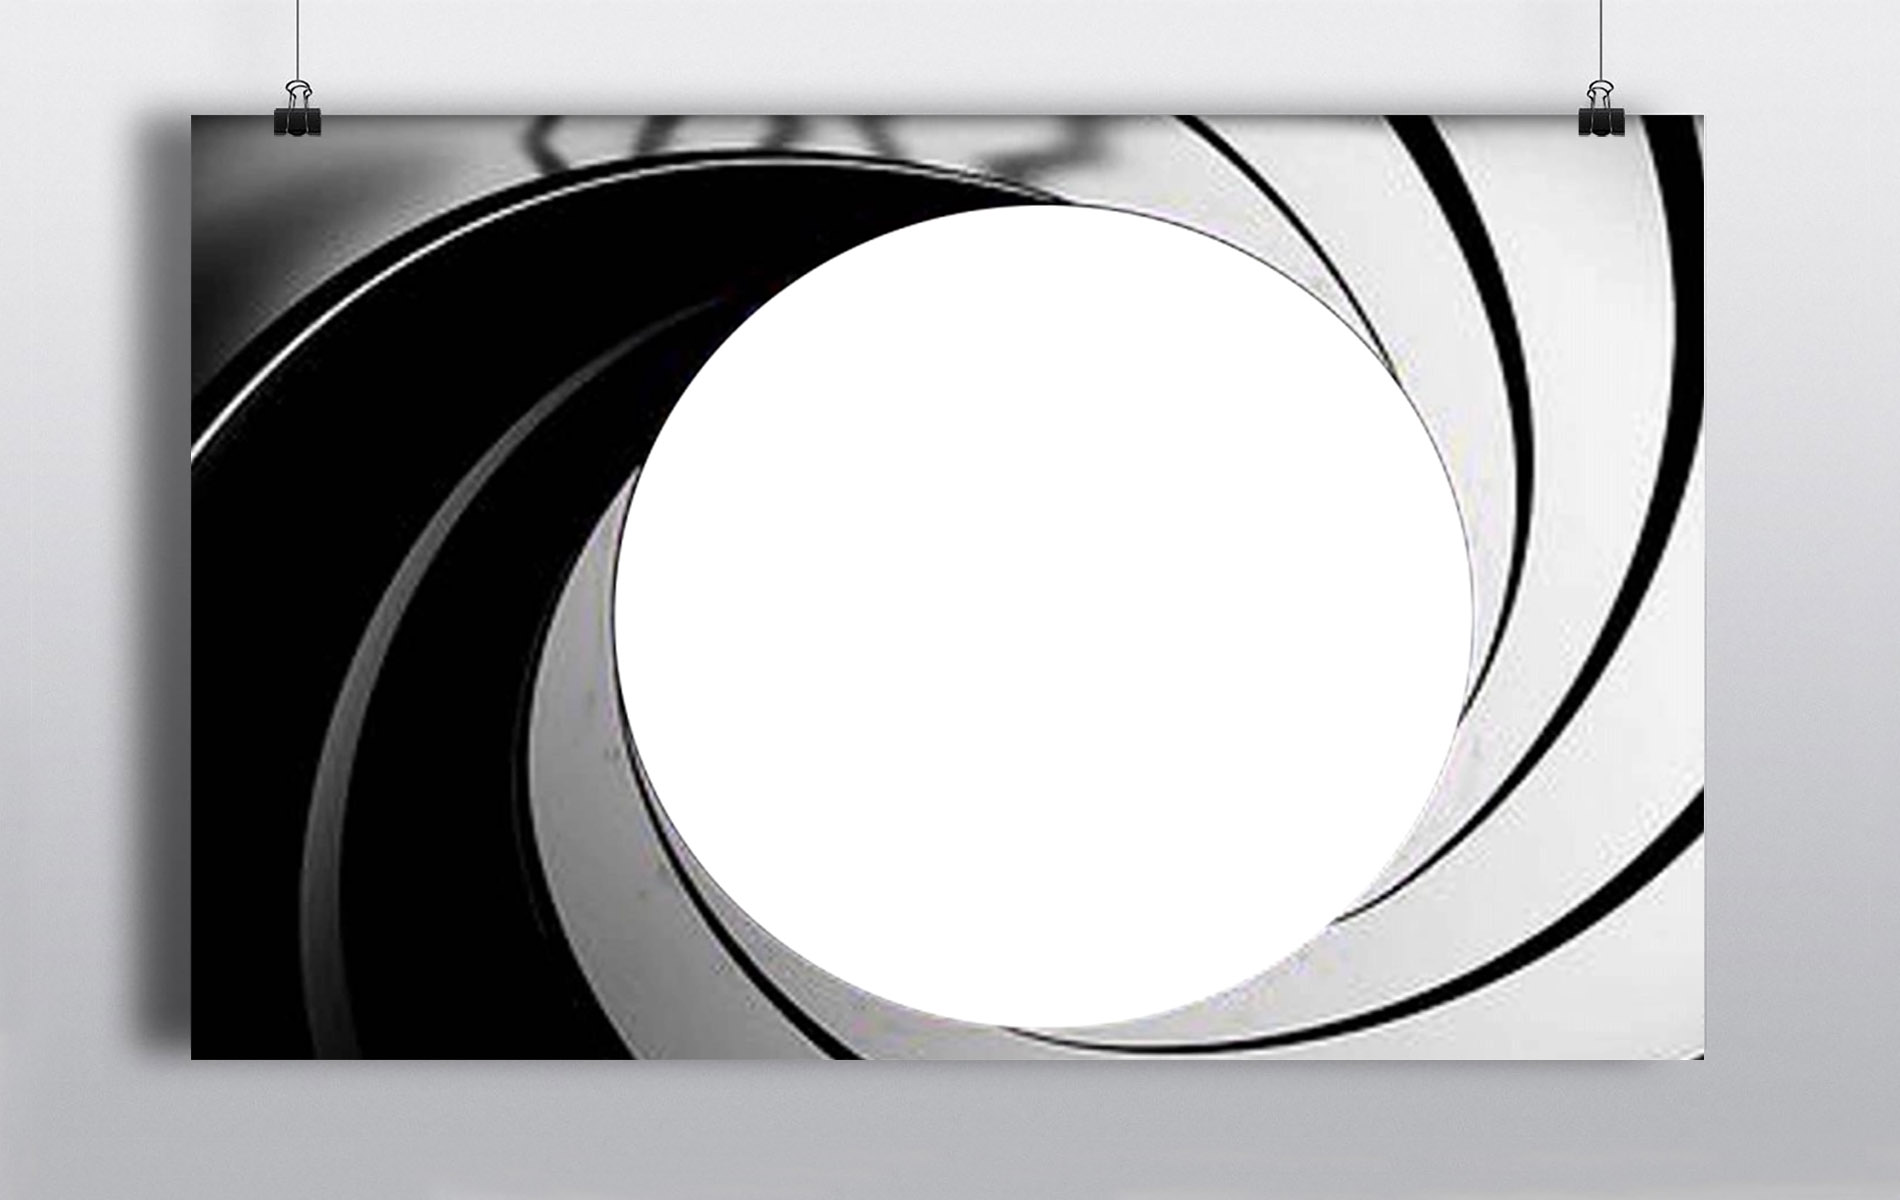 007 Gun Barrel Backdrop